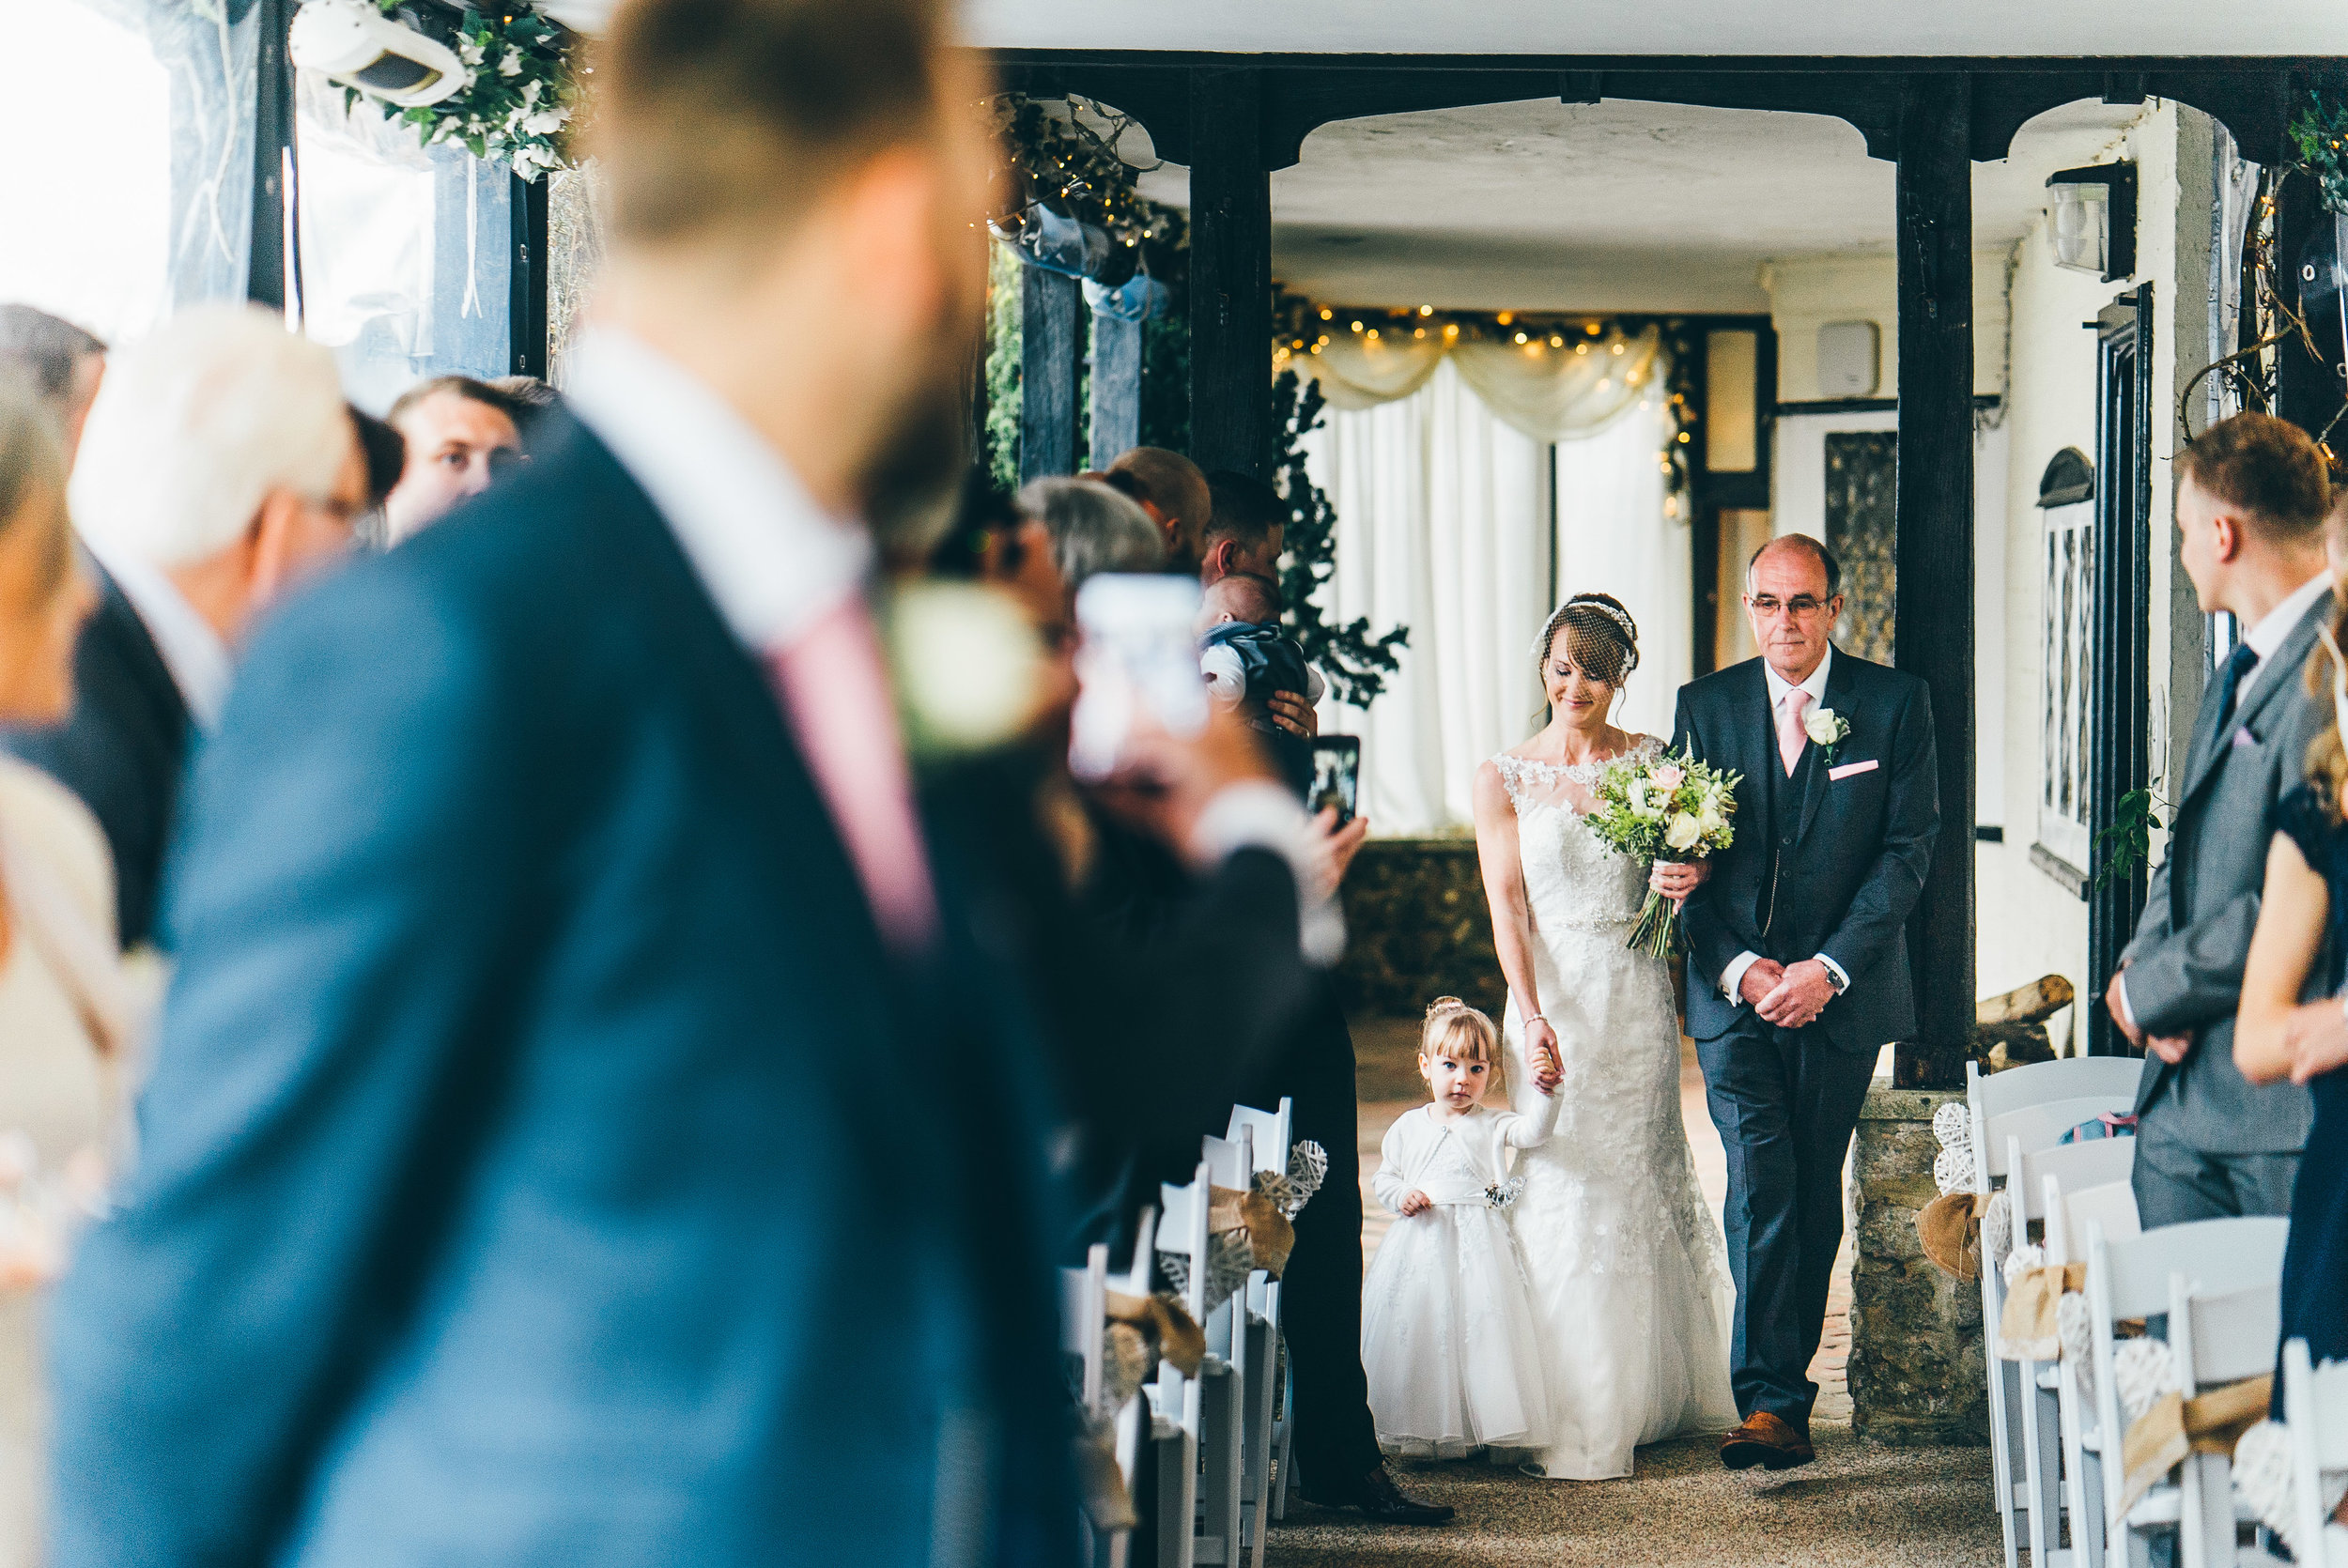 The ceremony at Hayne House